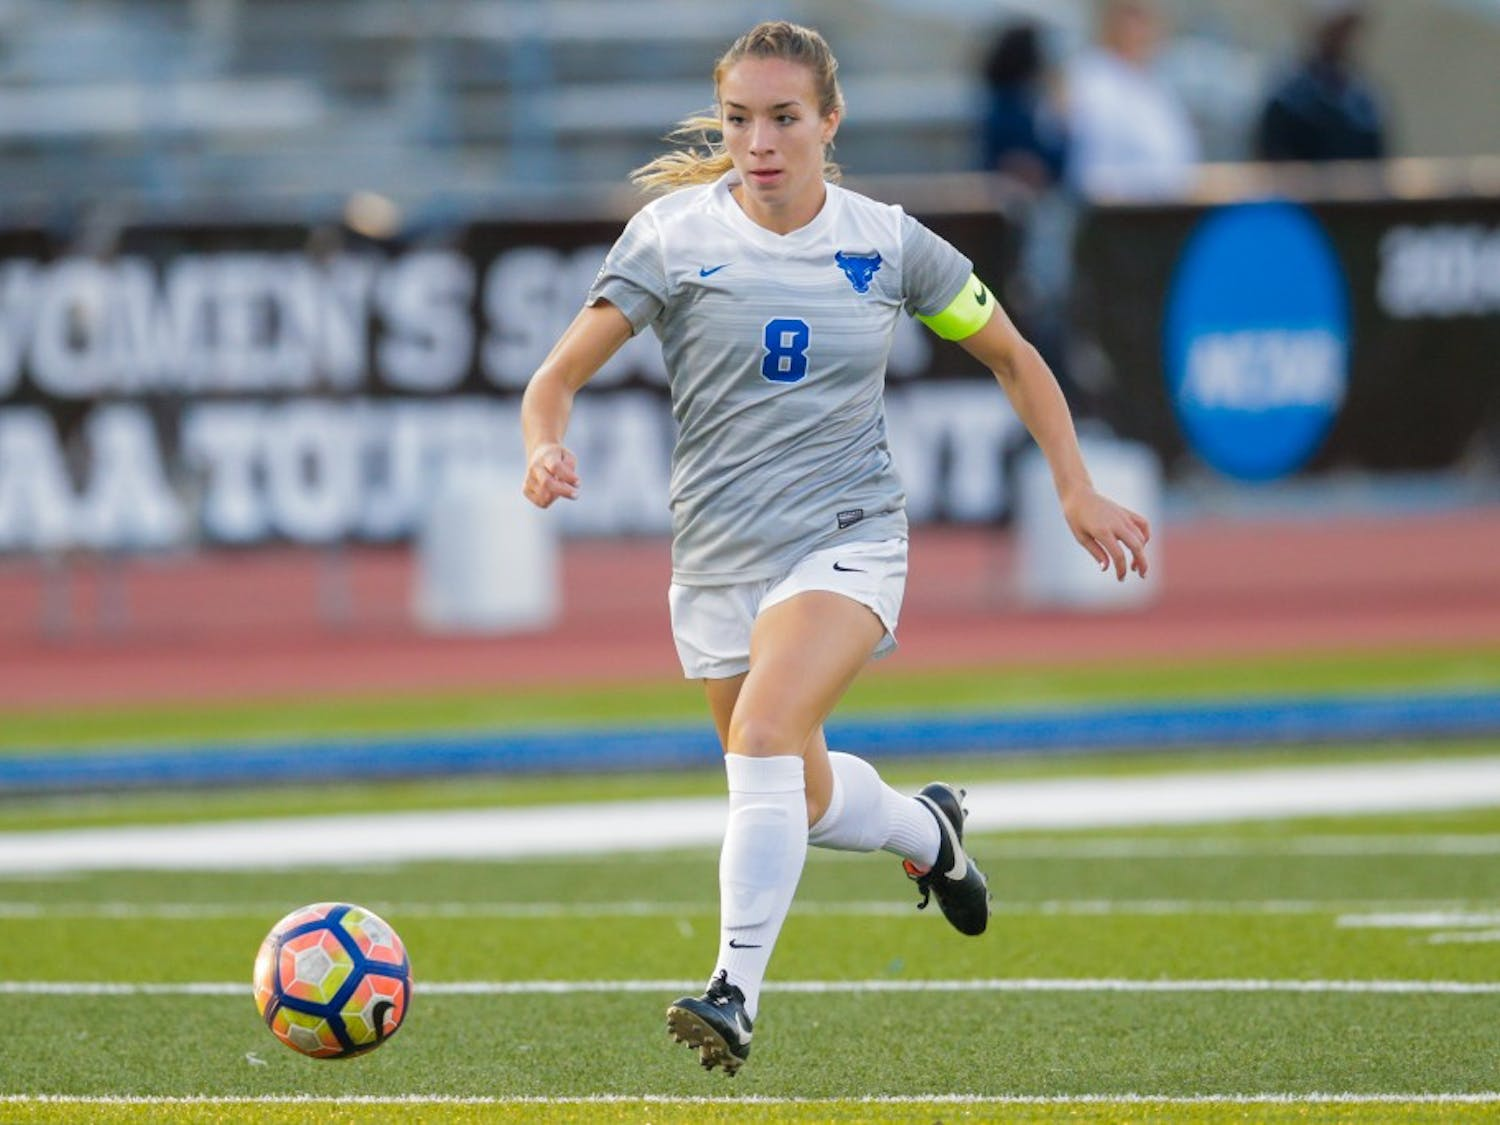 Senior forward Carissima Cutrona dribbles through the midfield. Cutrona leads the team with nine points on the season, including three goals in her past two games.